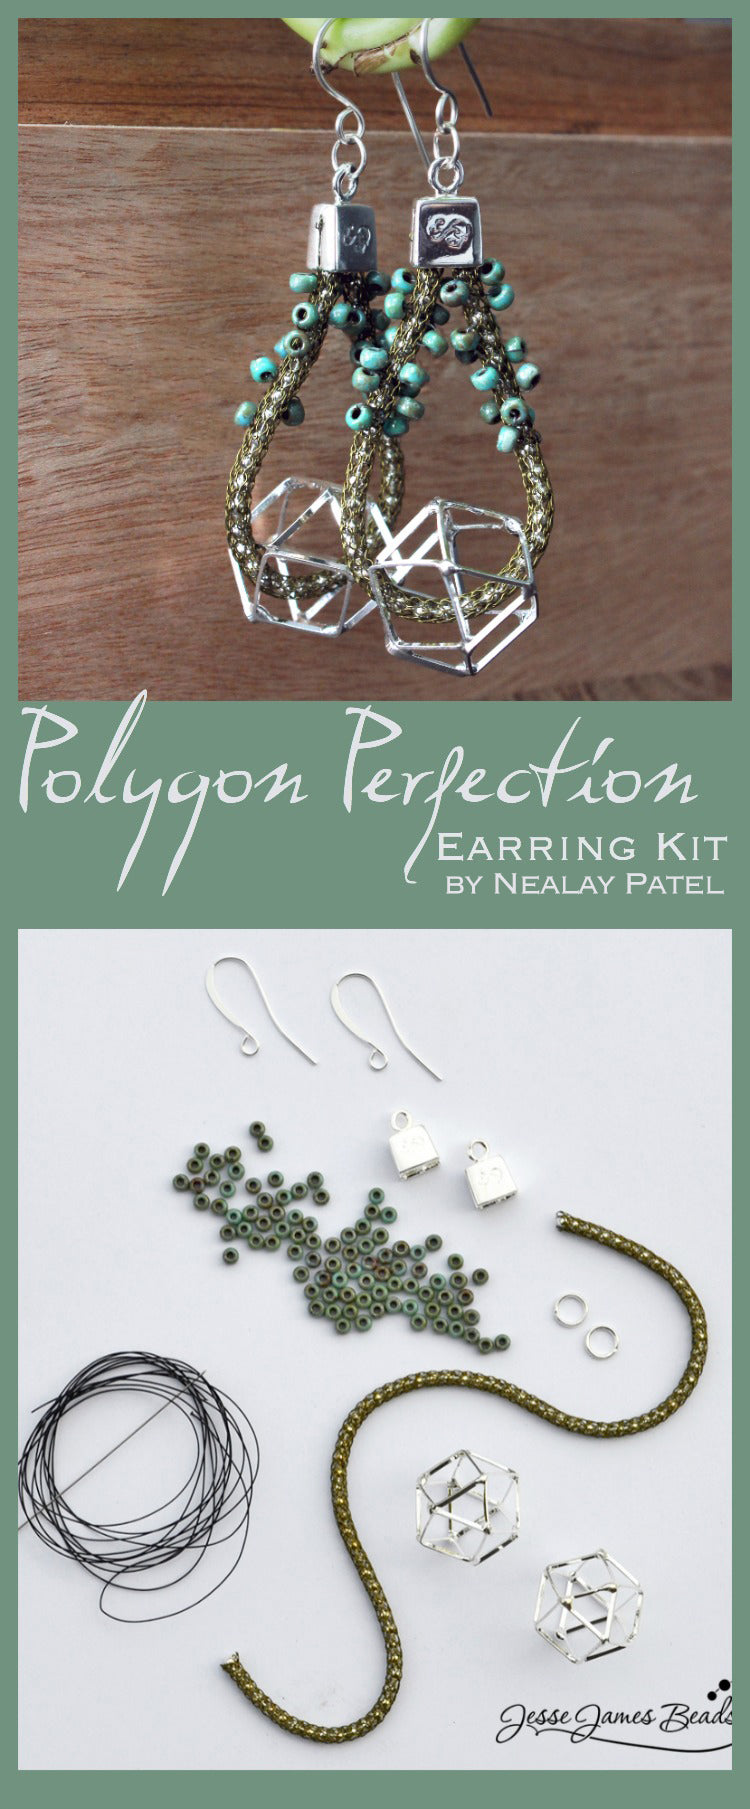 polygon perfection earring kit copy